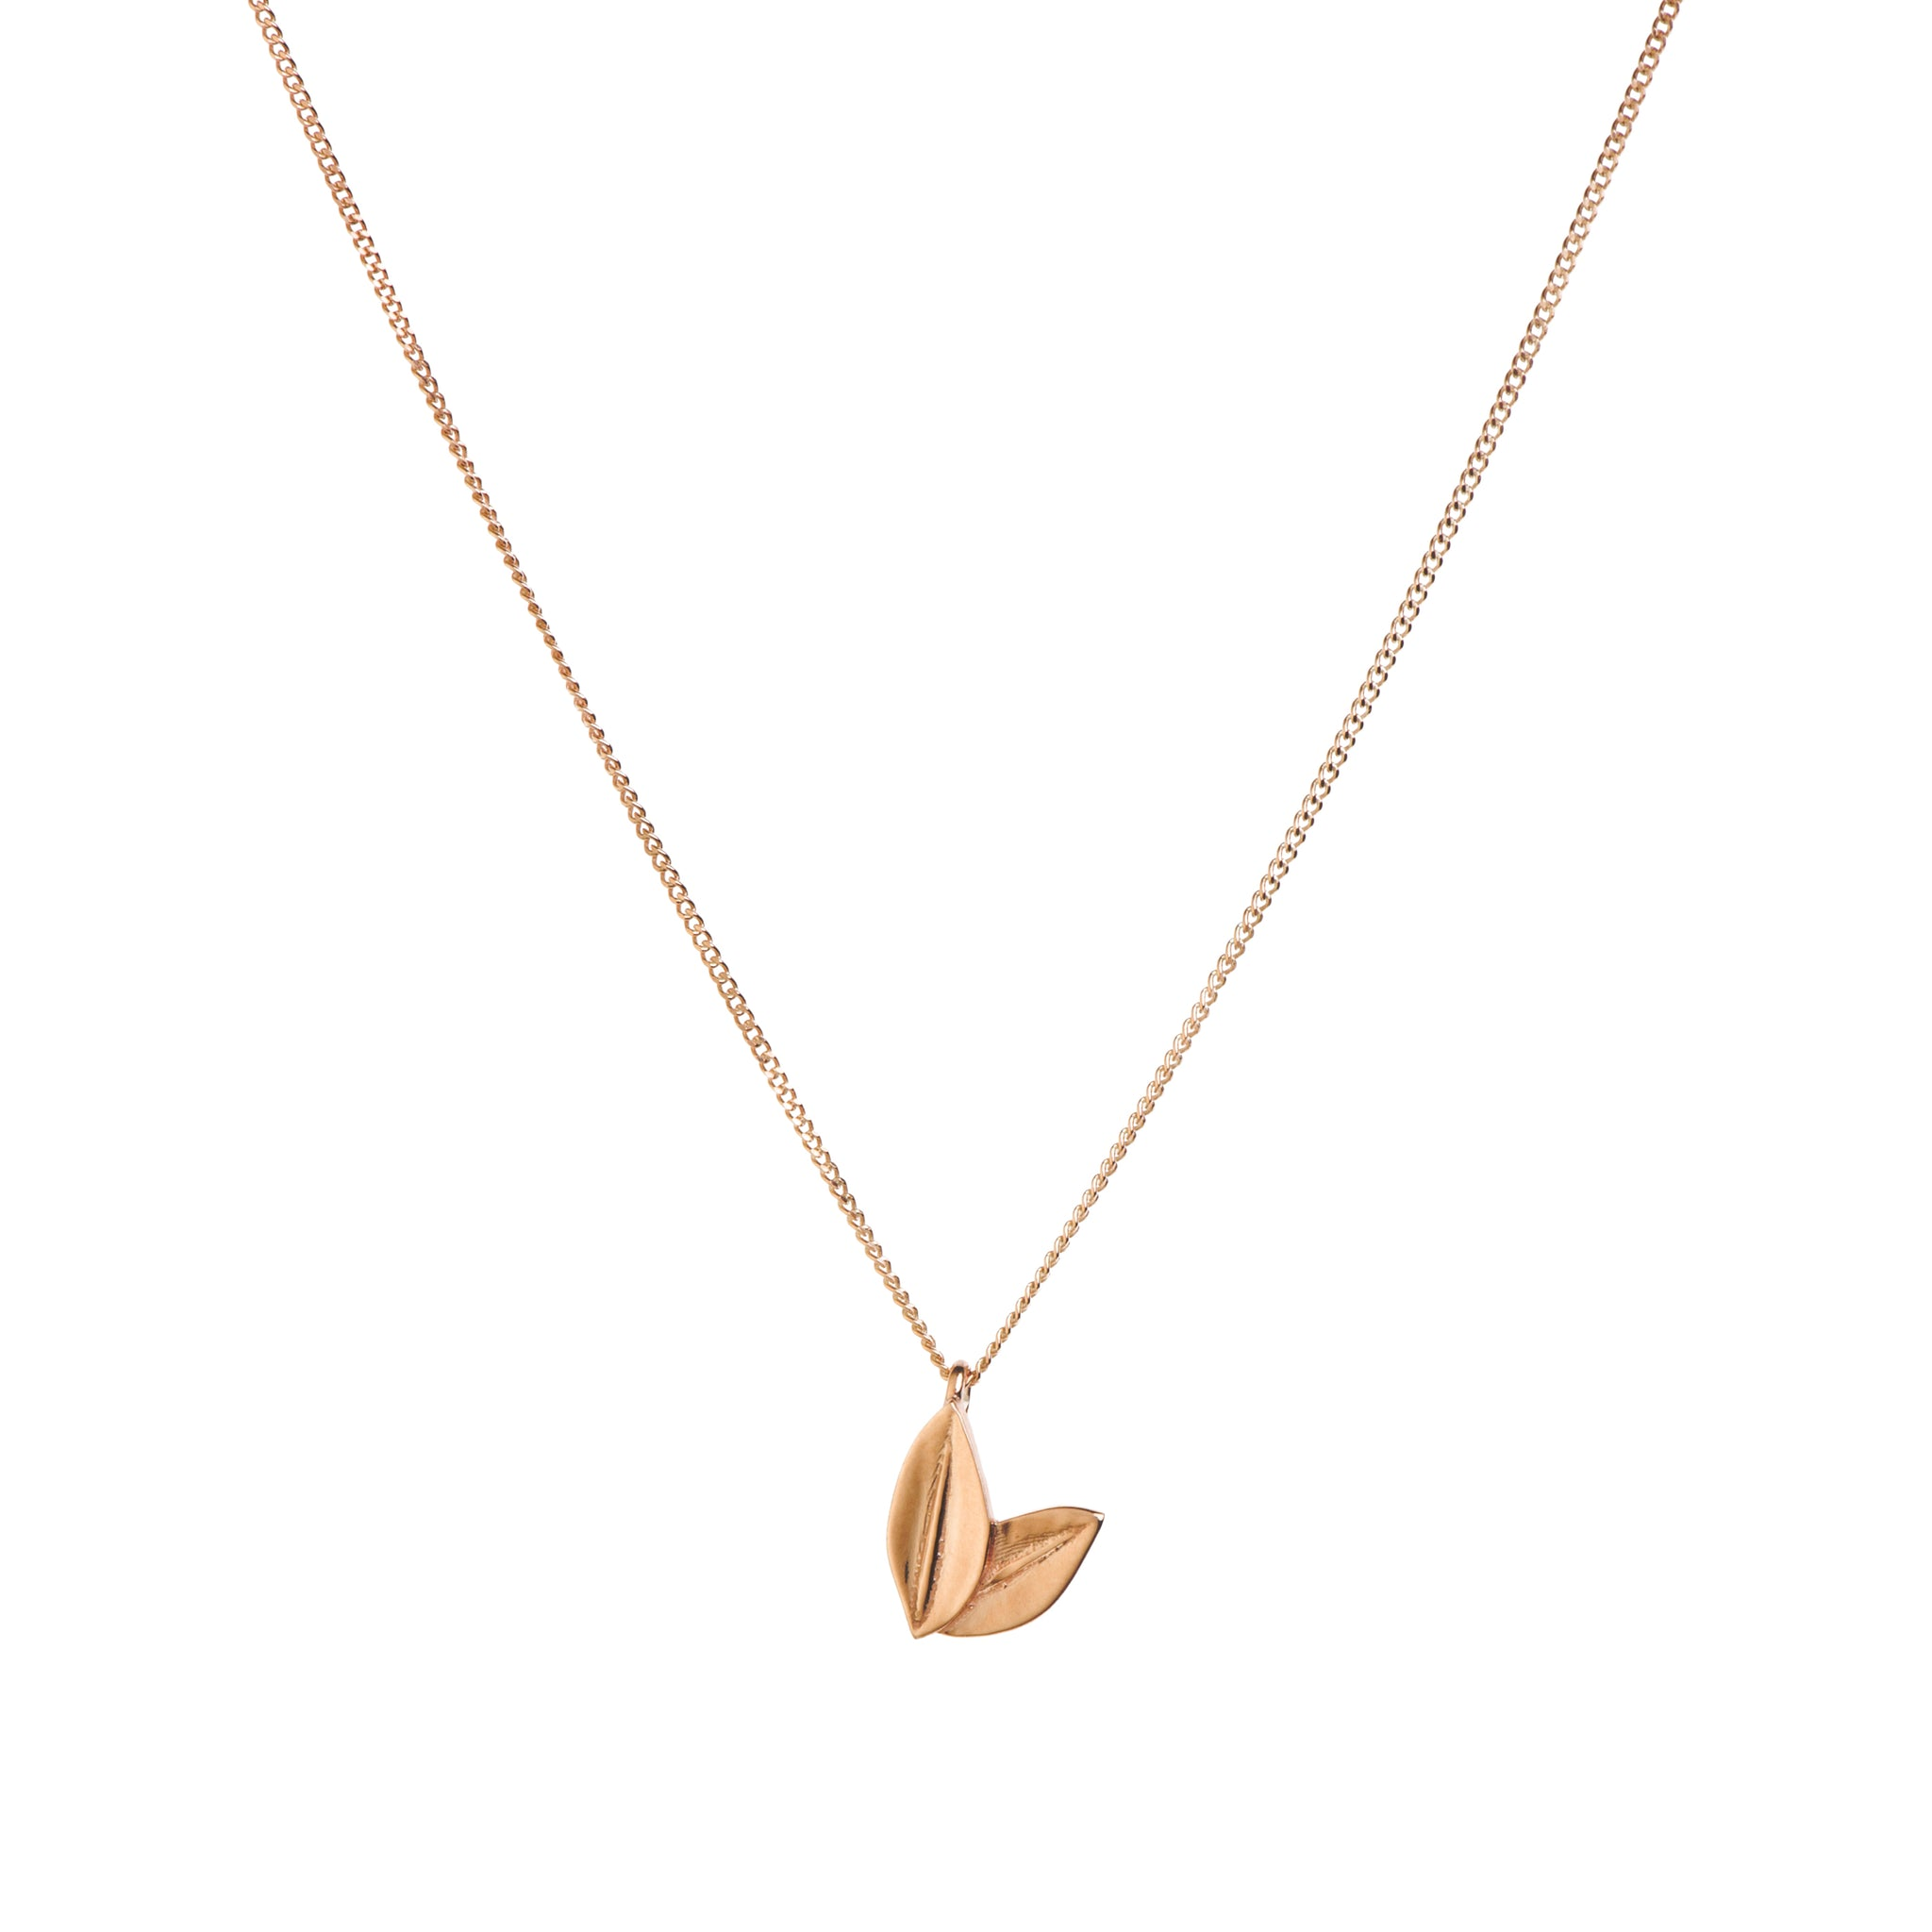 Two Leaf Necklace in Rose Gold